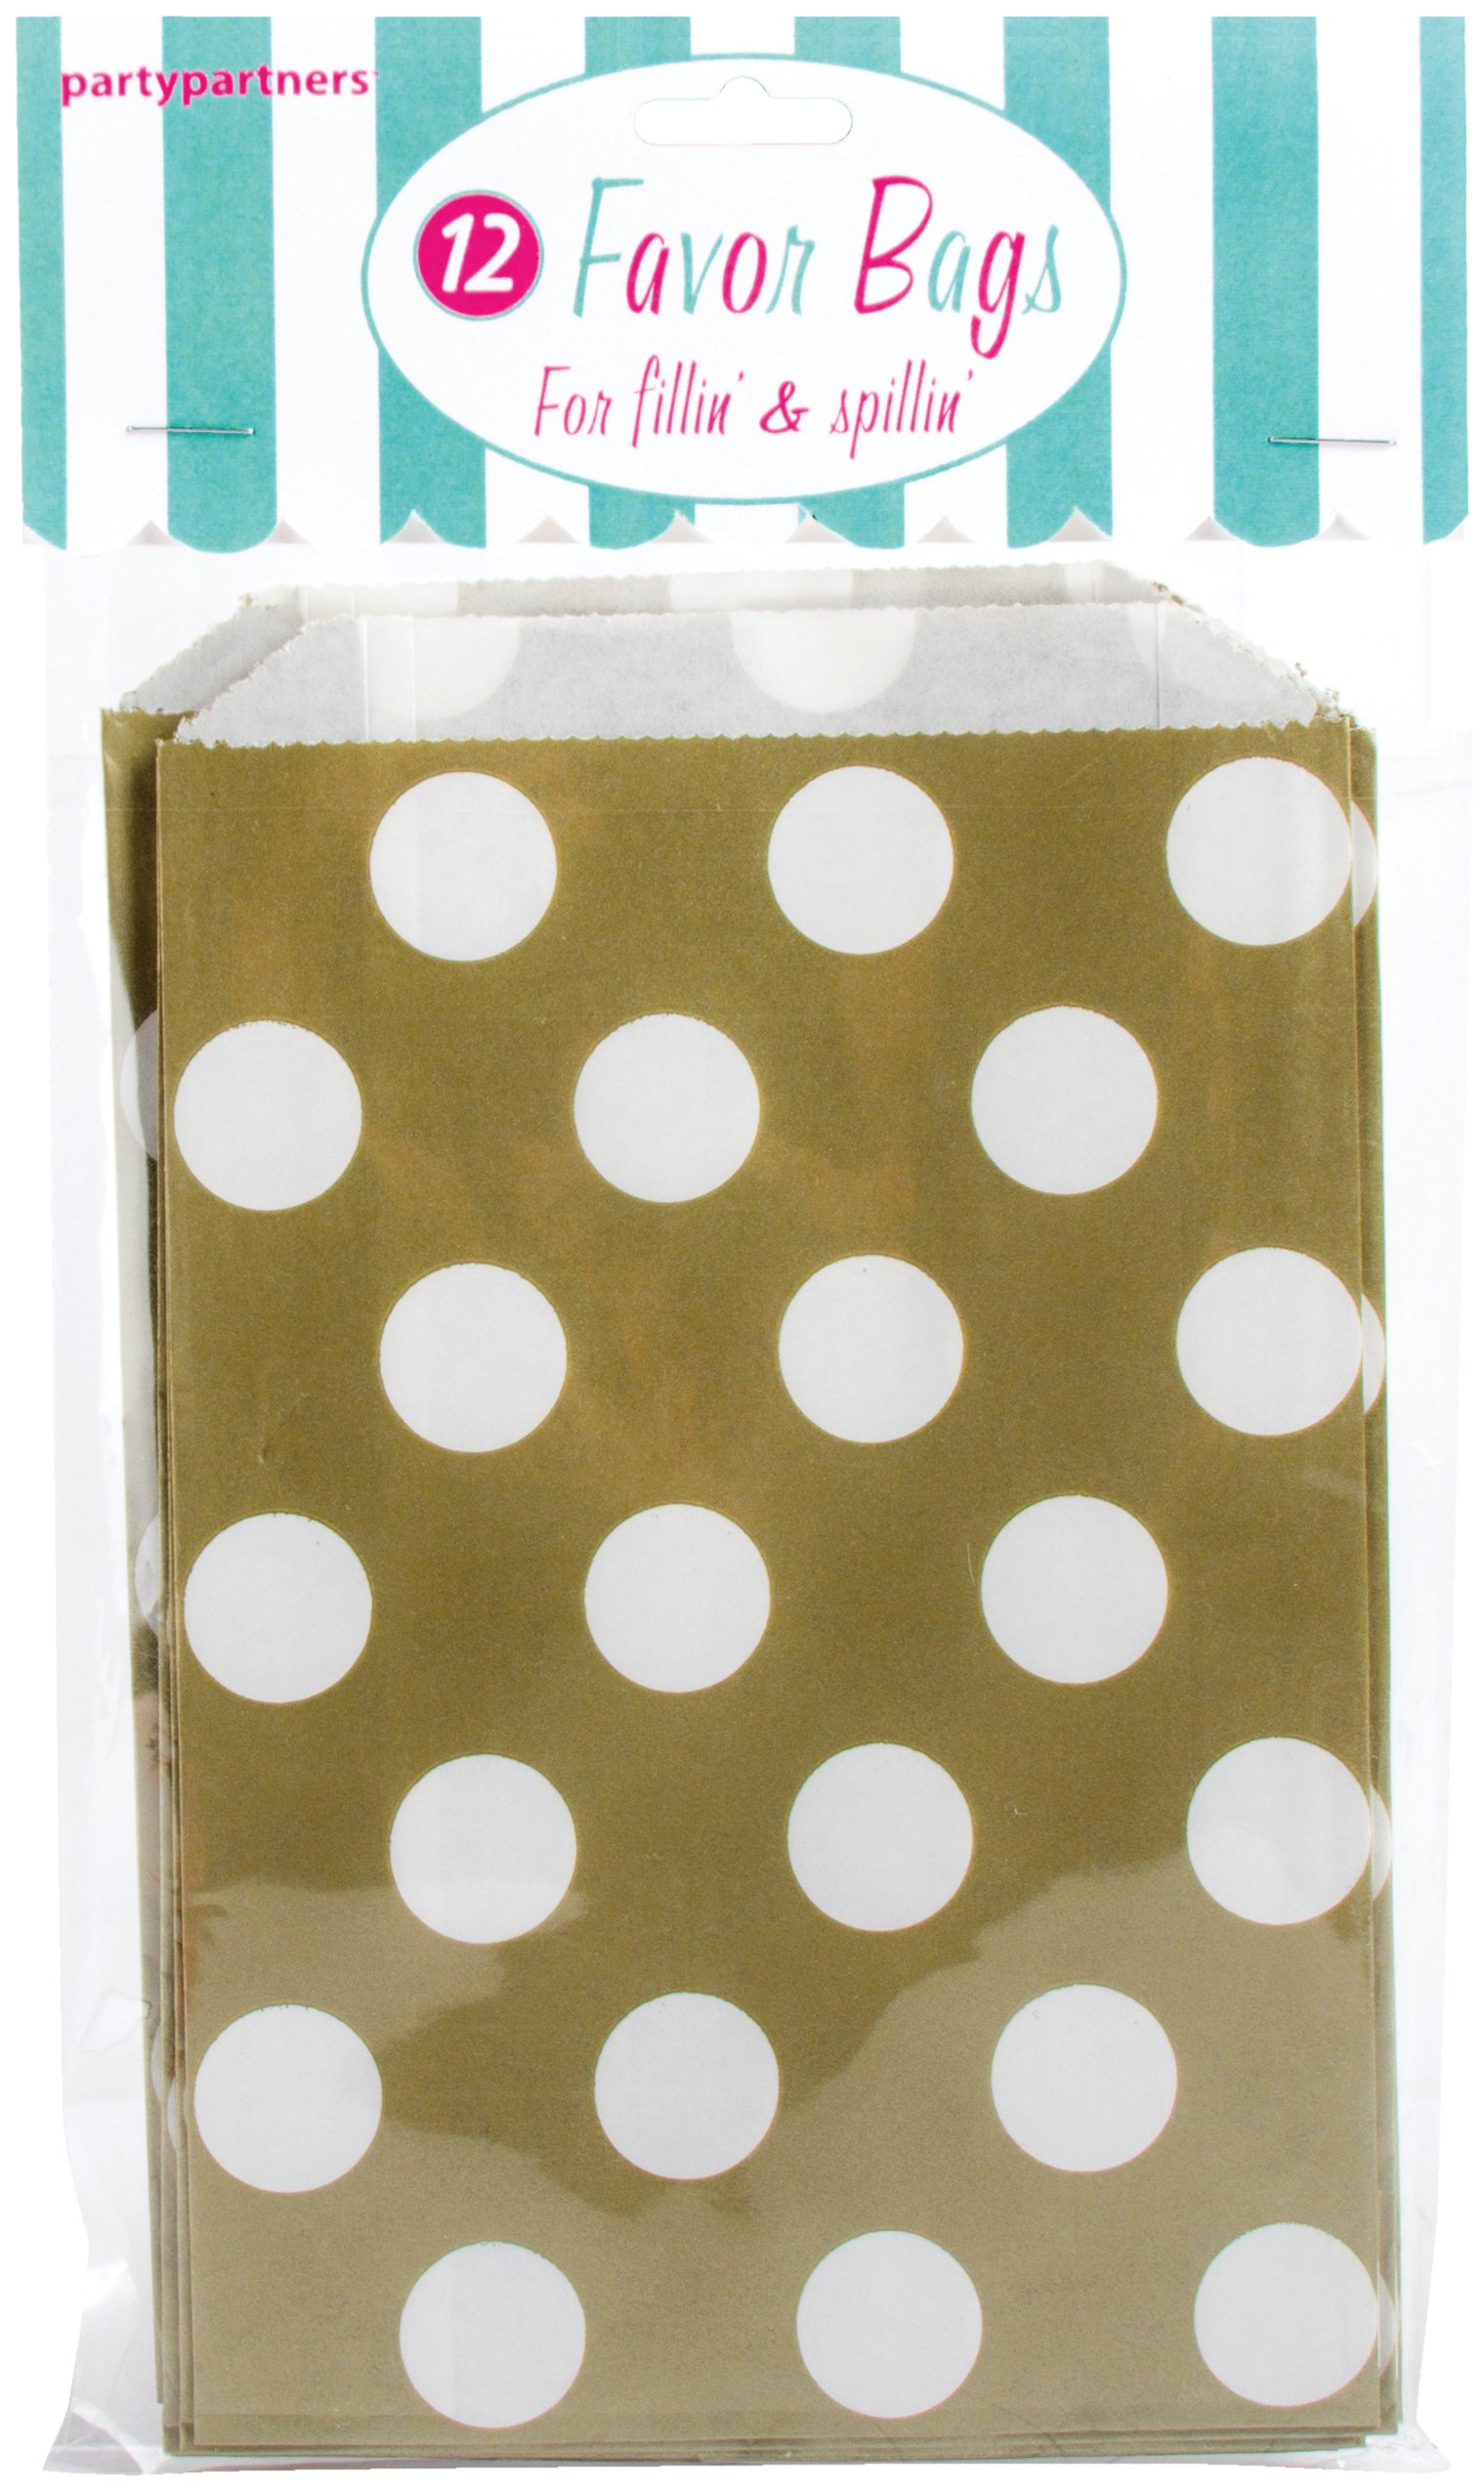 Party Partners 12 Count Paper Favor Bag, Gold Dots by Party Partners (Image #1)